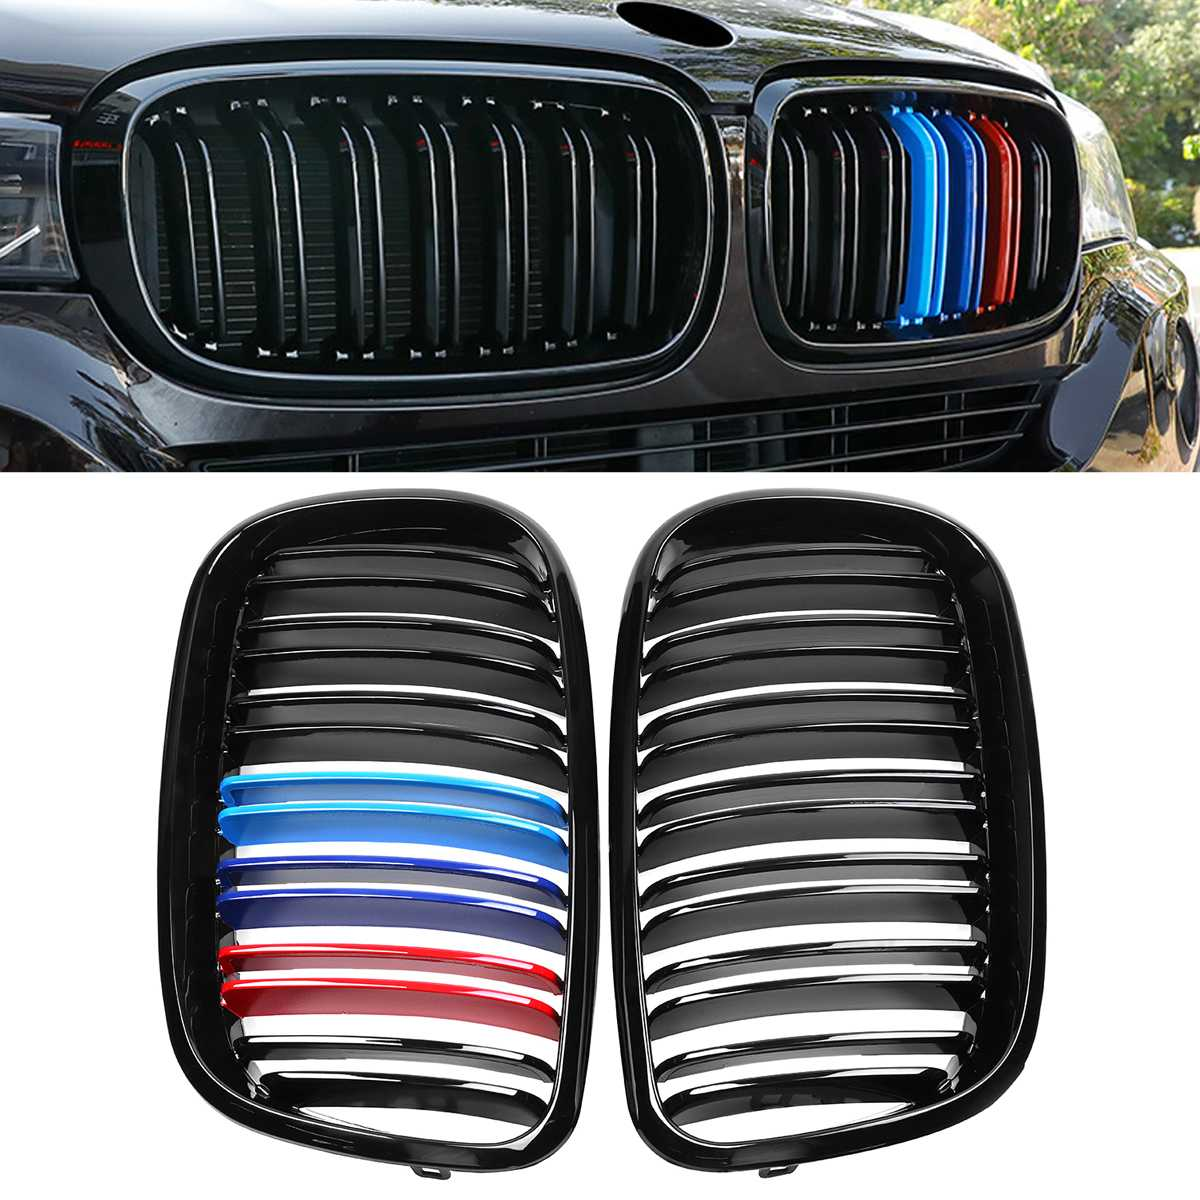 For BMW X5 E70 2008-2013 Front M-Colored Grille Grill Insert Cover Trim 3pcs